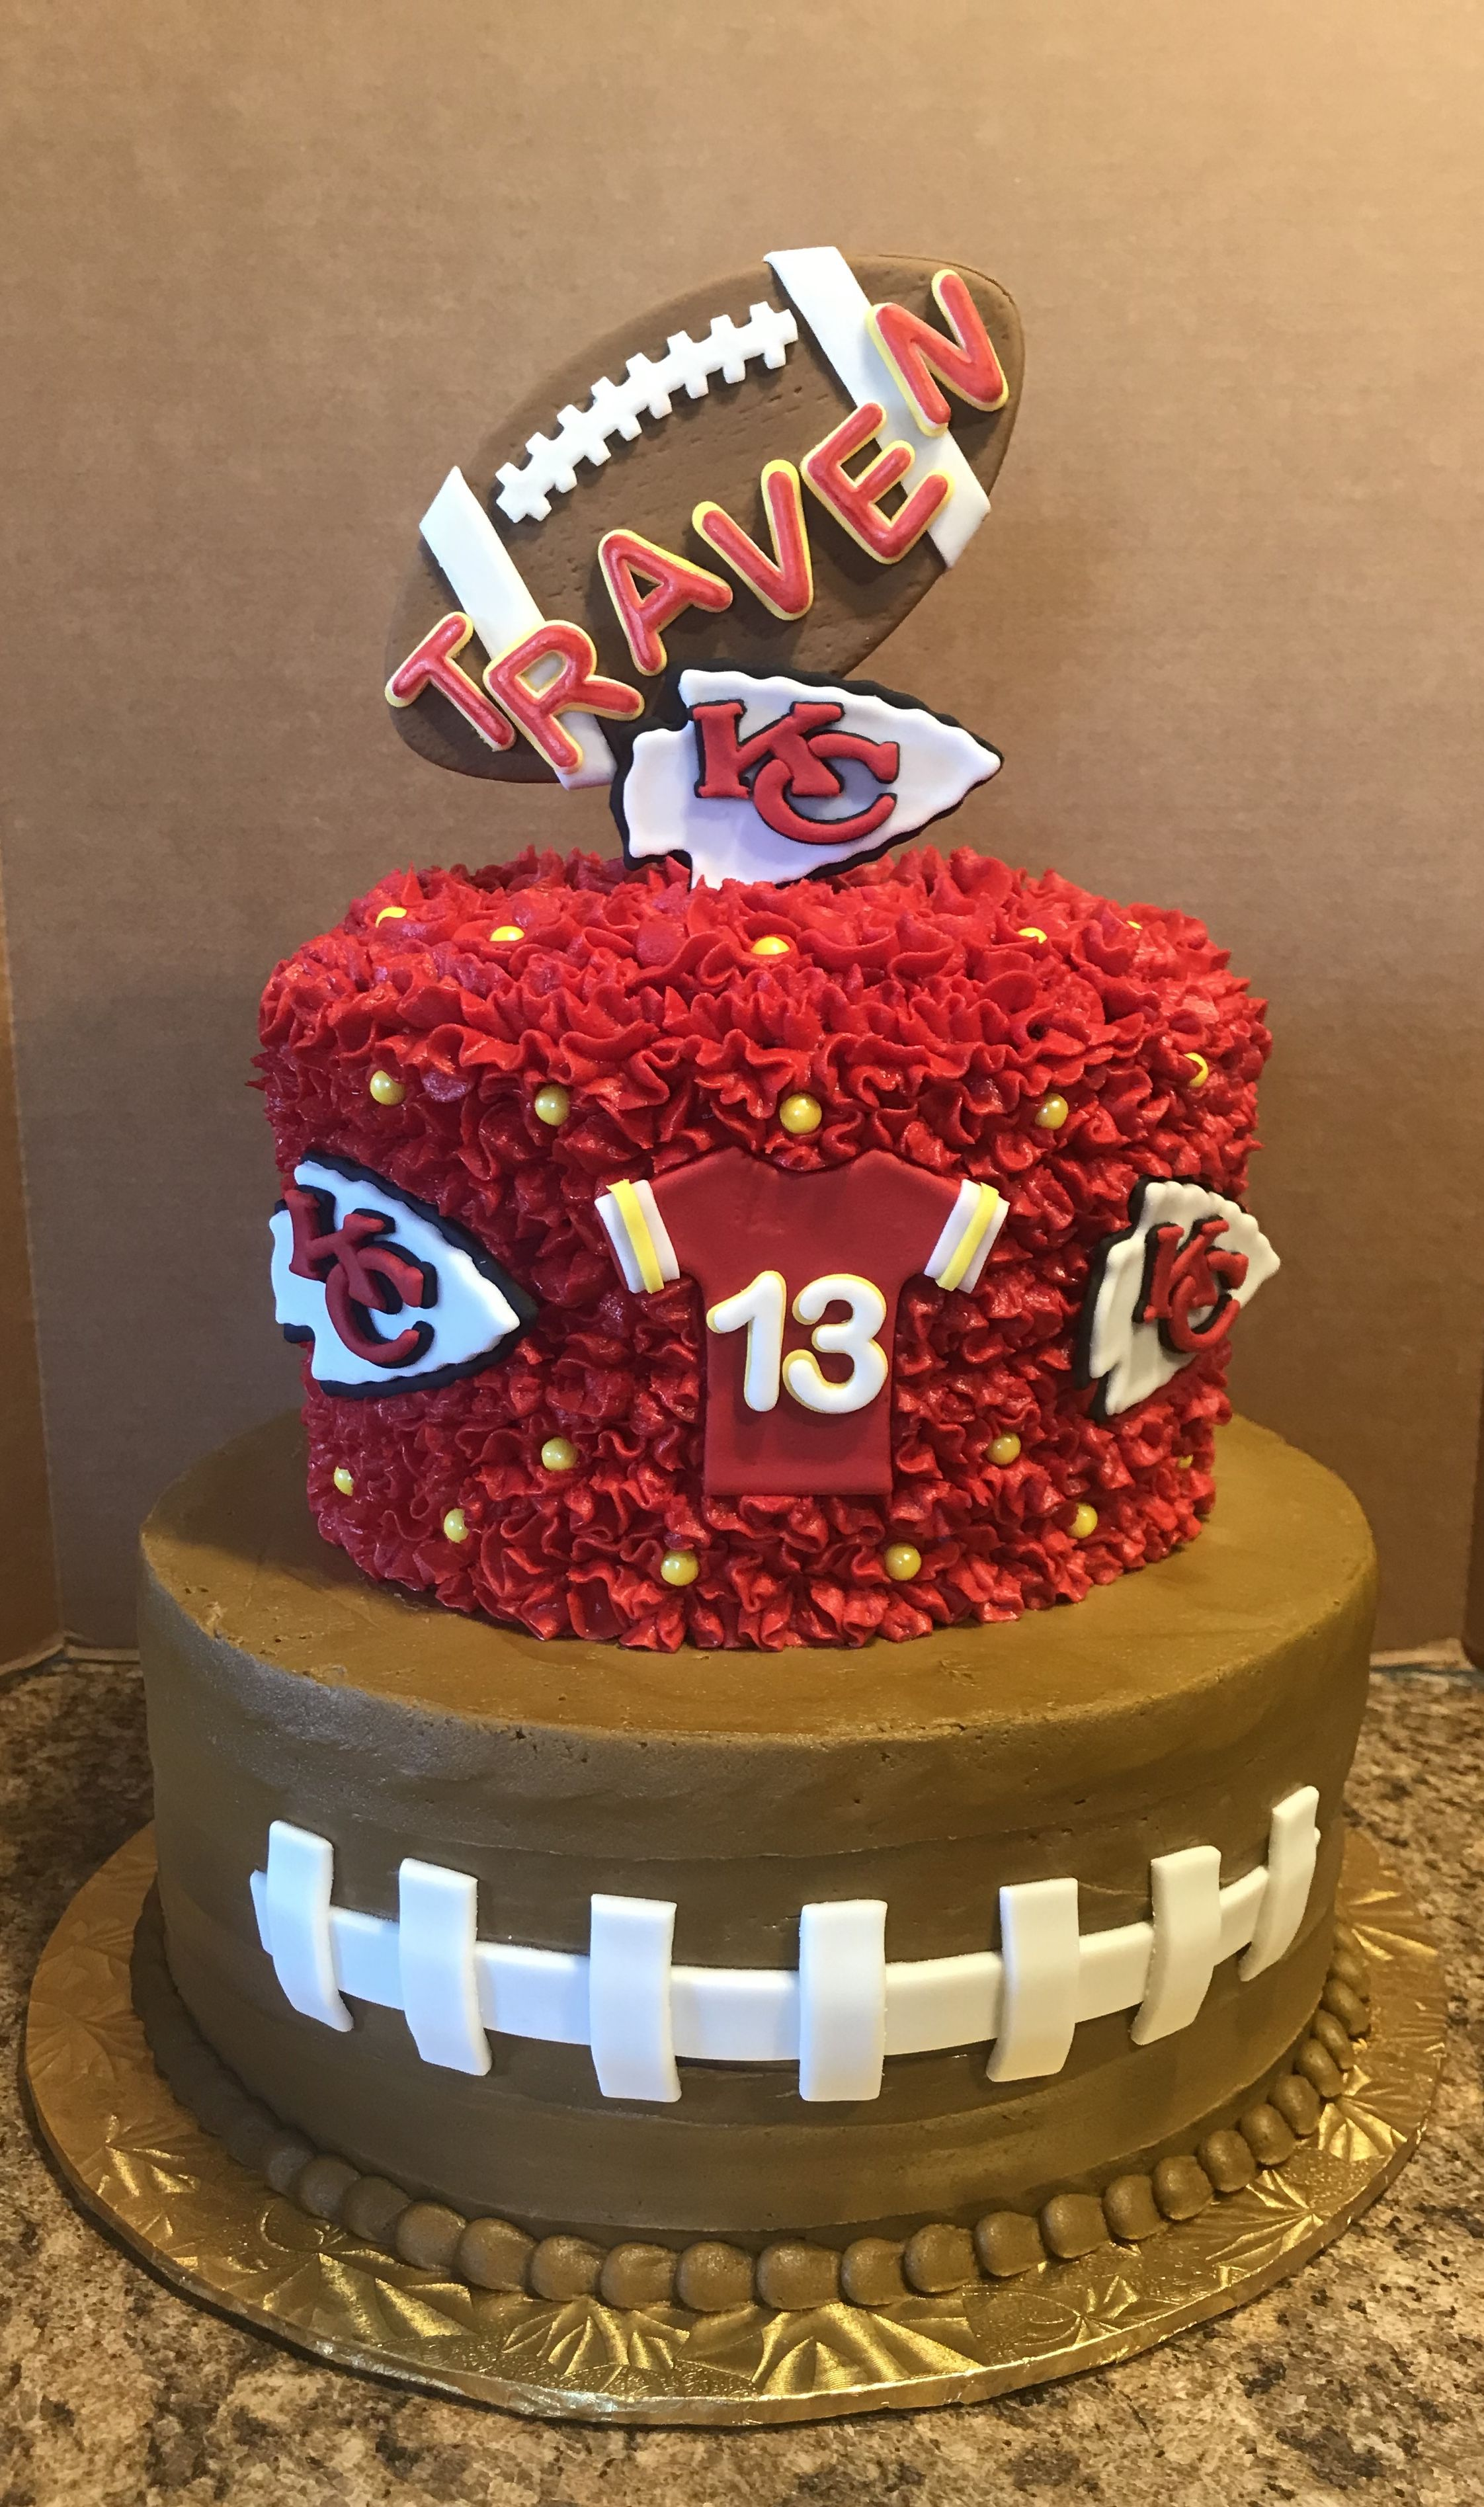 Stupendous Kc Chiefs Birthday Cake With Images Pretty Birthday Cakes Funny Birthday Cards Online Overcheapnameinfo